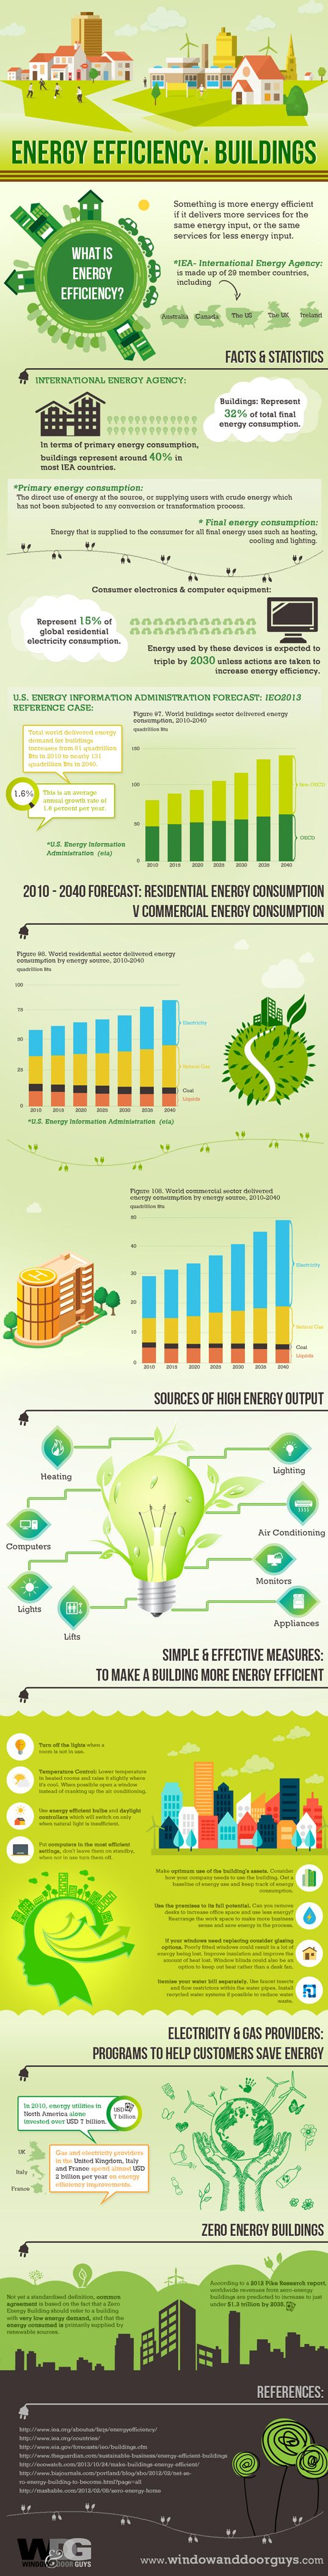 Energy efficiency infographic, infographic, energy efficiency, making buildings more energy efficient